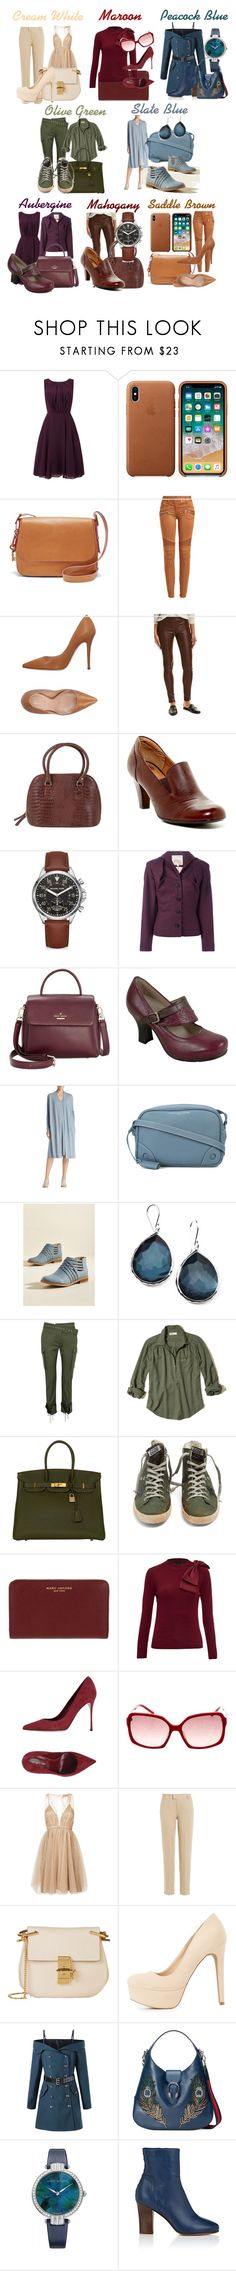 """Aya's David Zyla Colors"" by lora-86 ❤ liked on Polyvore featuring Phase Eight, FOSSIL, Balmain, Sebastian Professional, Helmut Lang, NOVICA, Söfft, Michael Kors, Vivienne Westwood and Kate Spade"